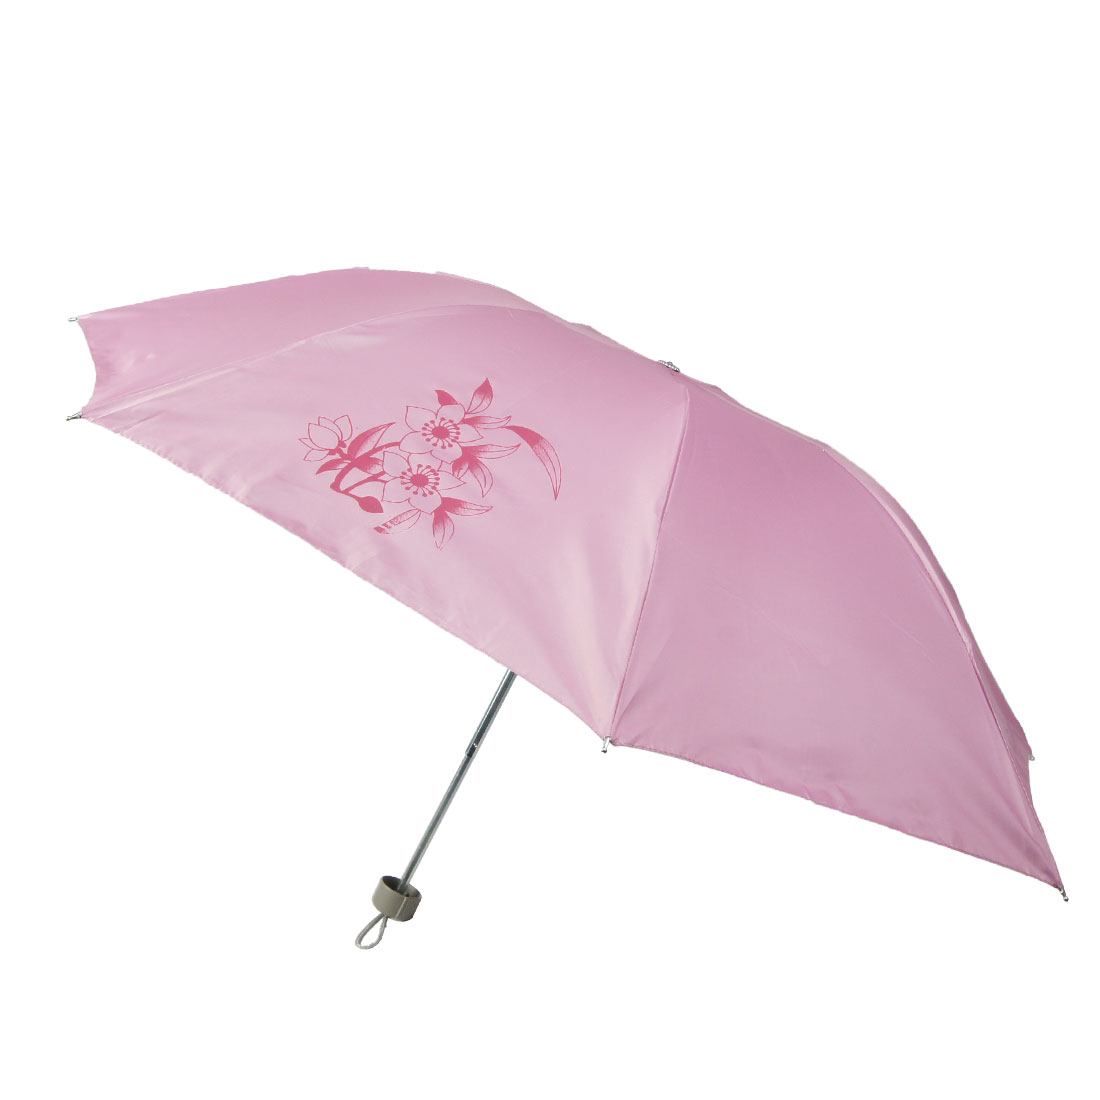 Gray Plastic Handle Red Flower Pattern Light Pink Retractable Umbrella